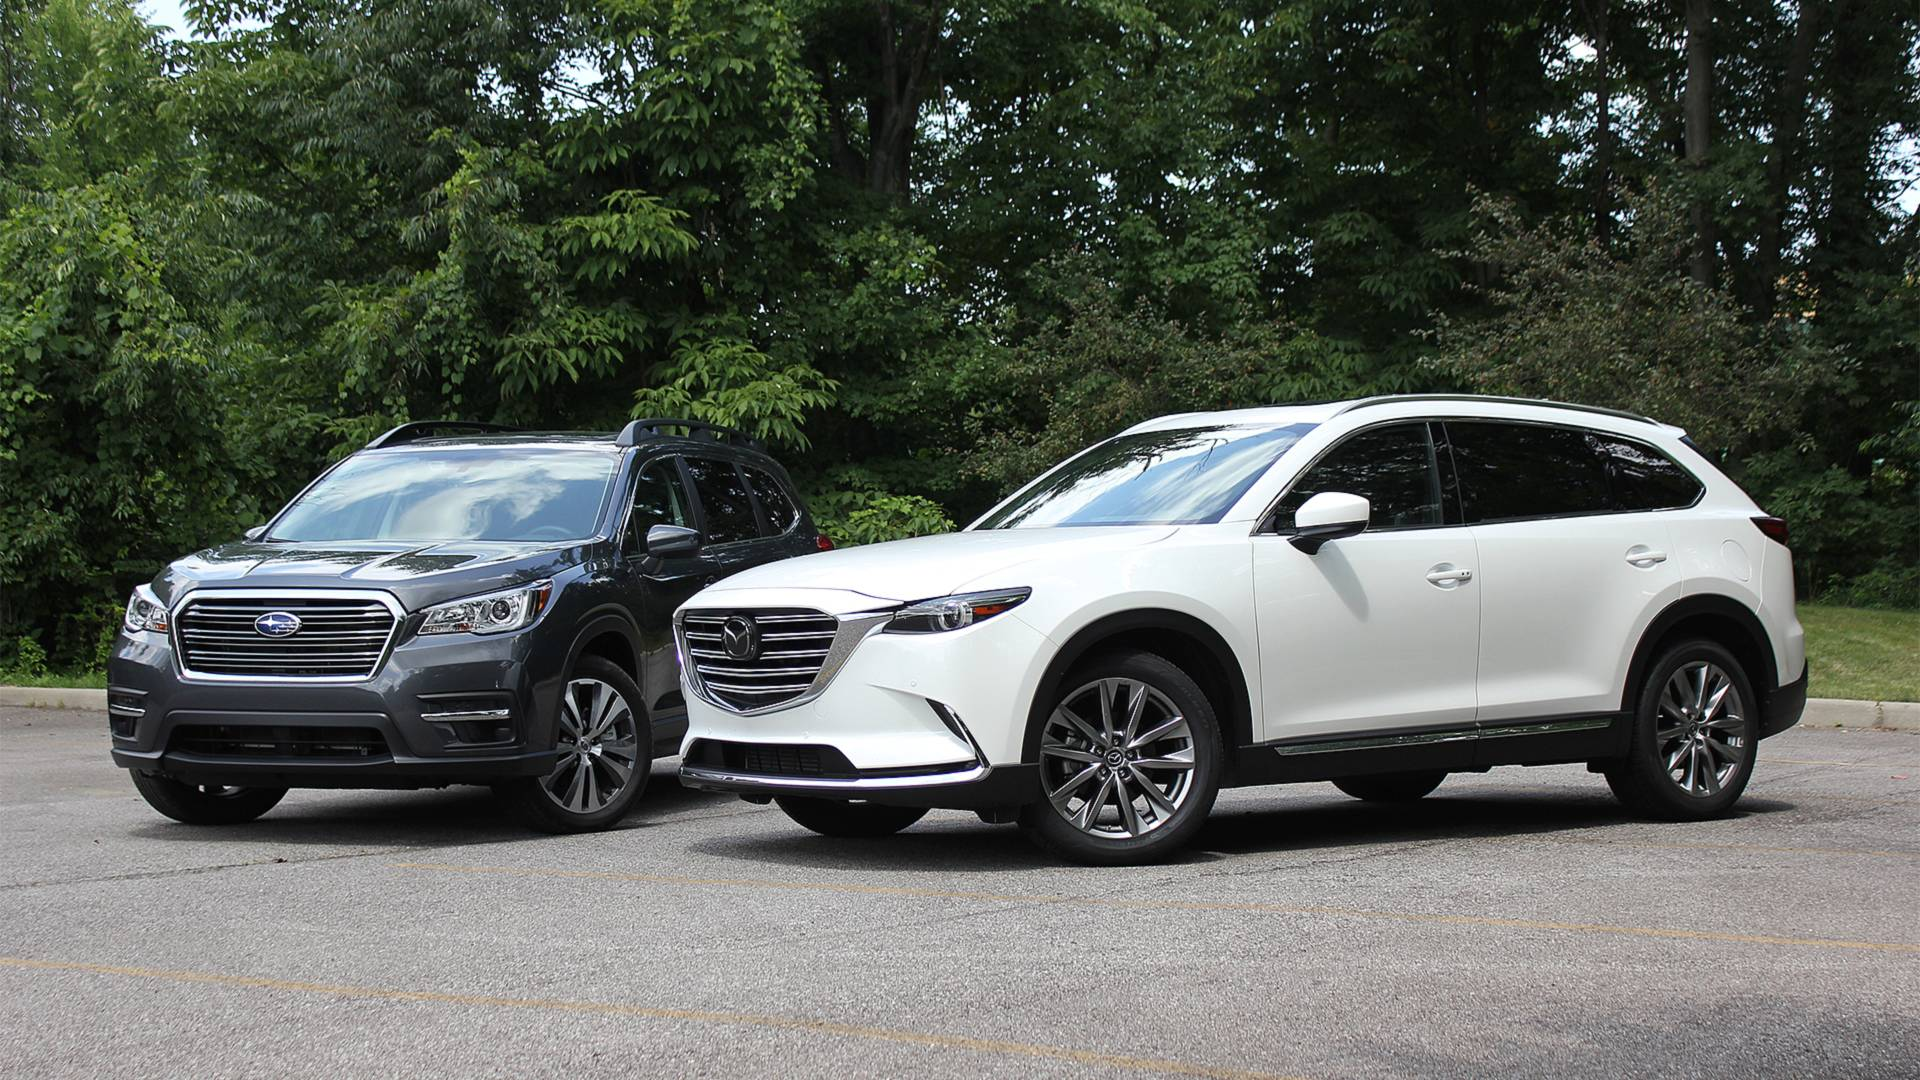 mazda-cx-9-vs-subaru-ascent-3.jpg